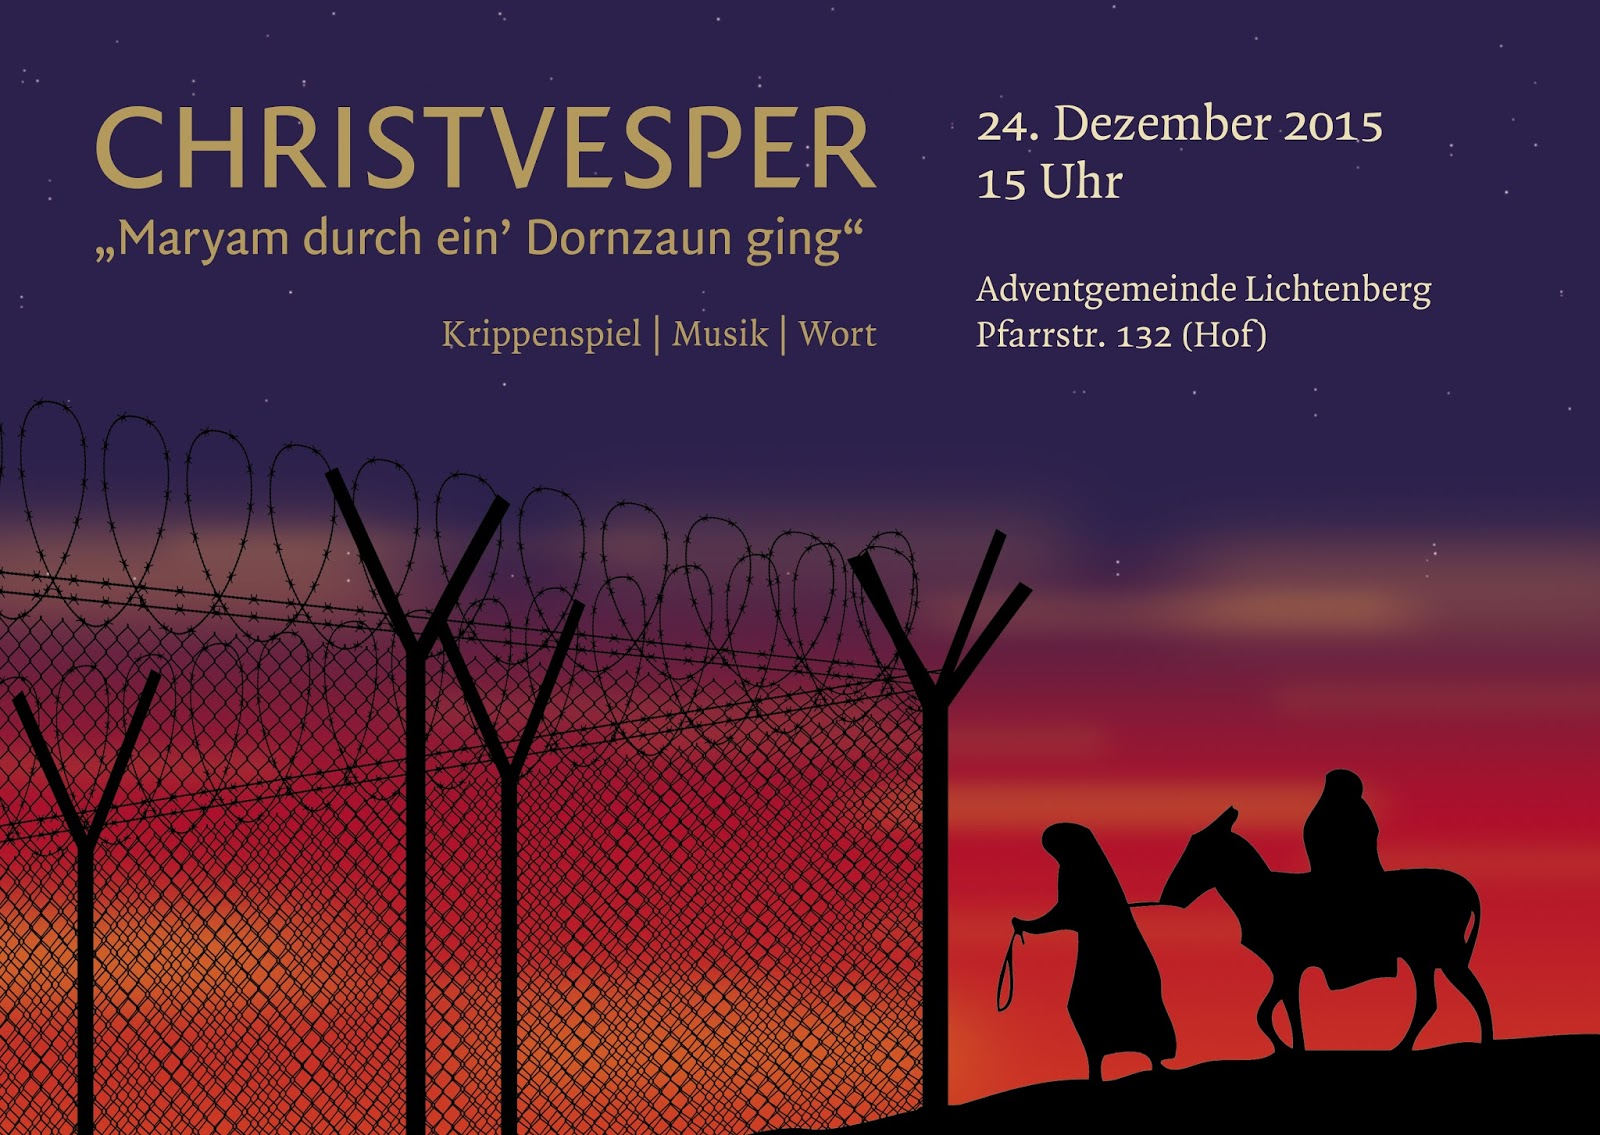 Christvesper 2015 in Berlin Lichtenberg